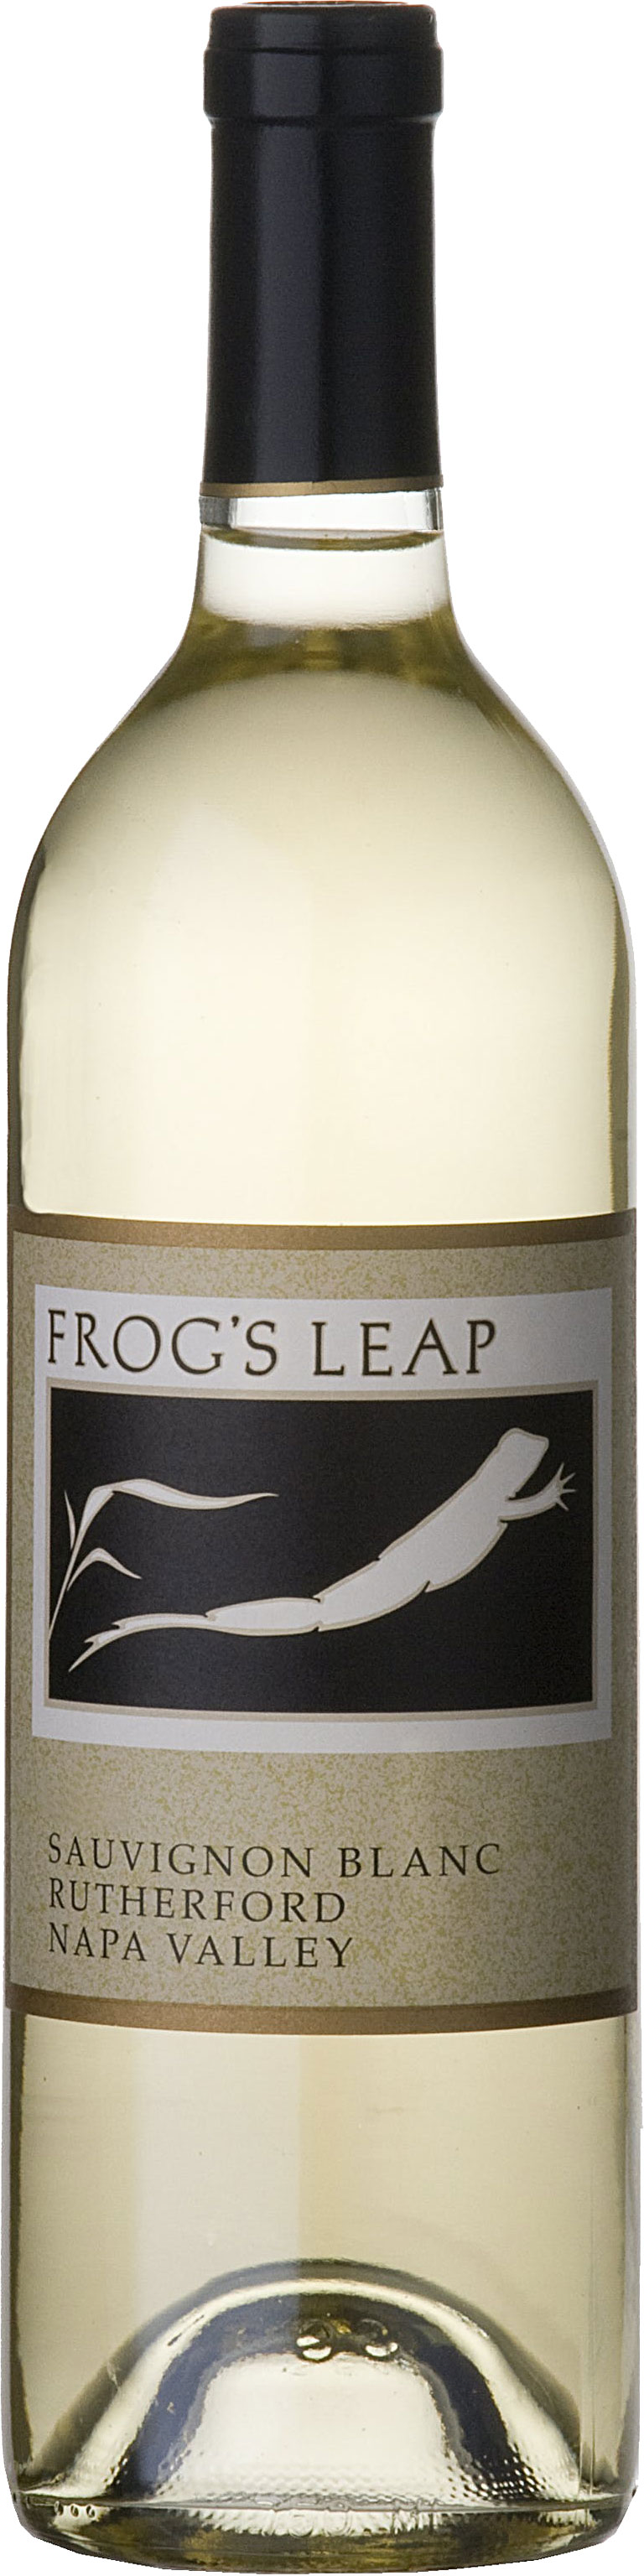 Frog's Leap - Sauvignon Blanc 2018 75cl Bottle